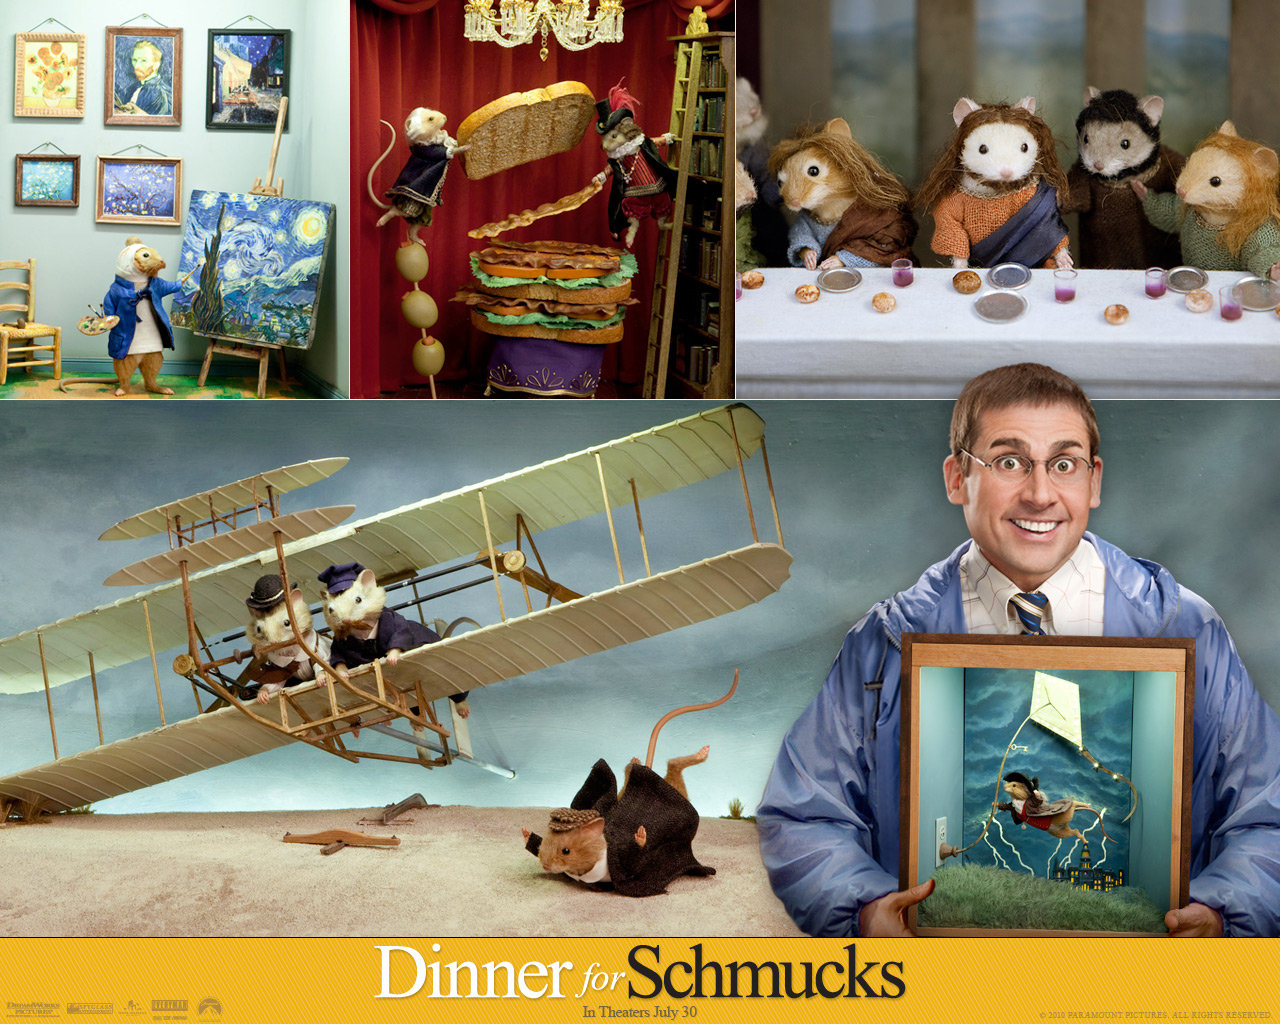 Dinner for Schmucks images Dinner For Schmucks! HD ...